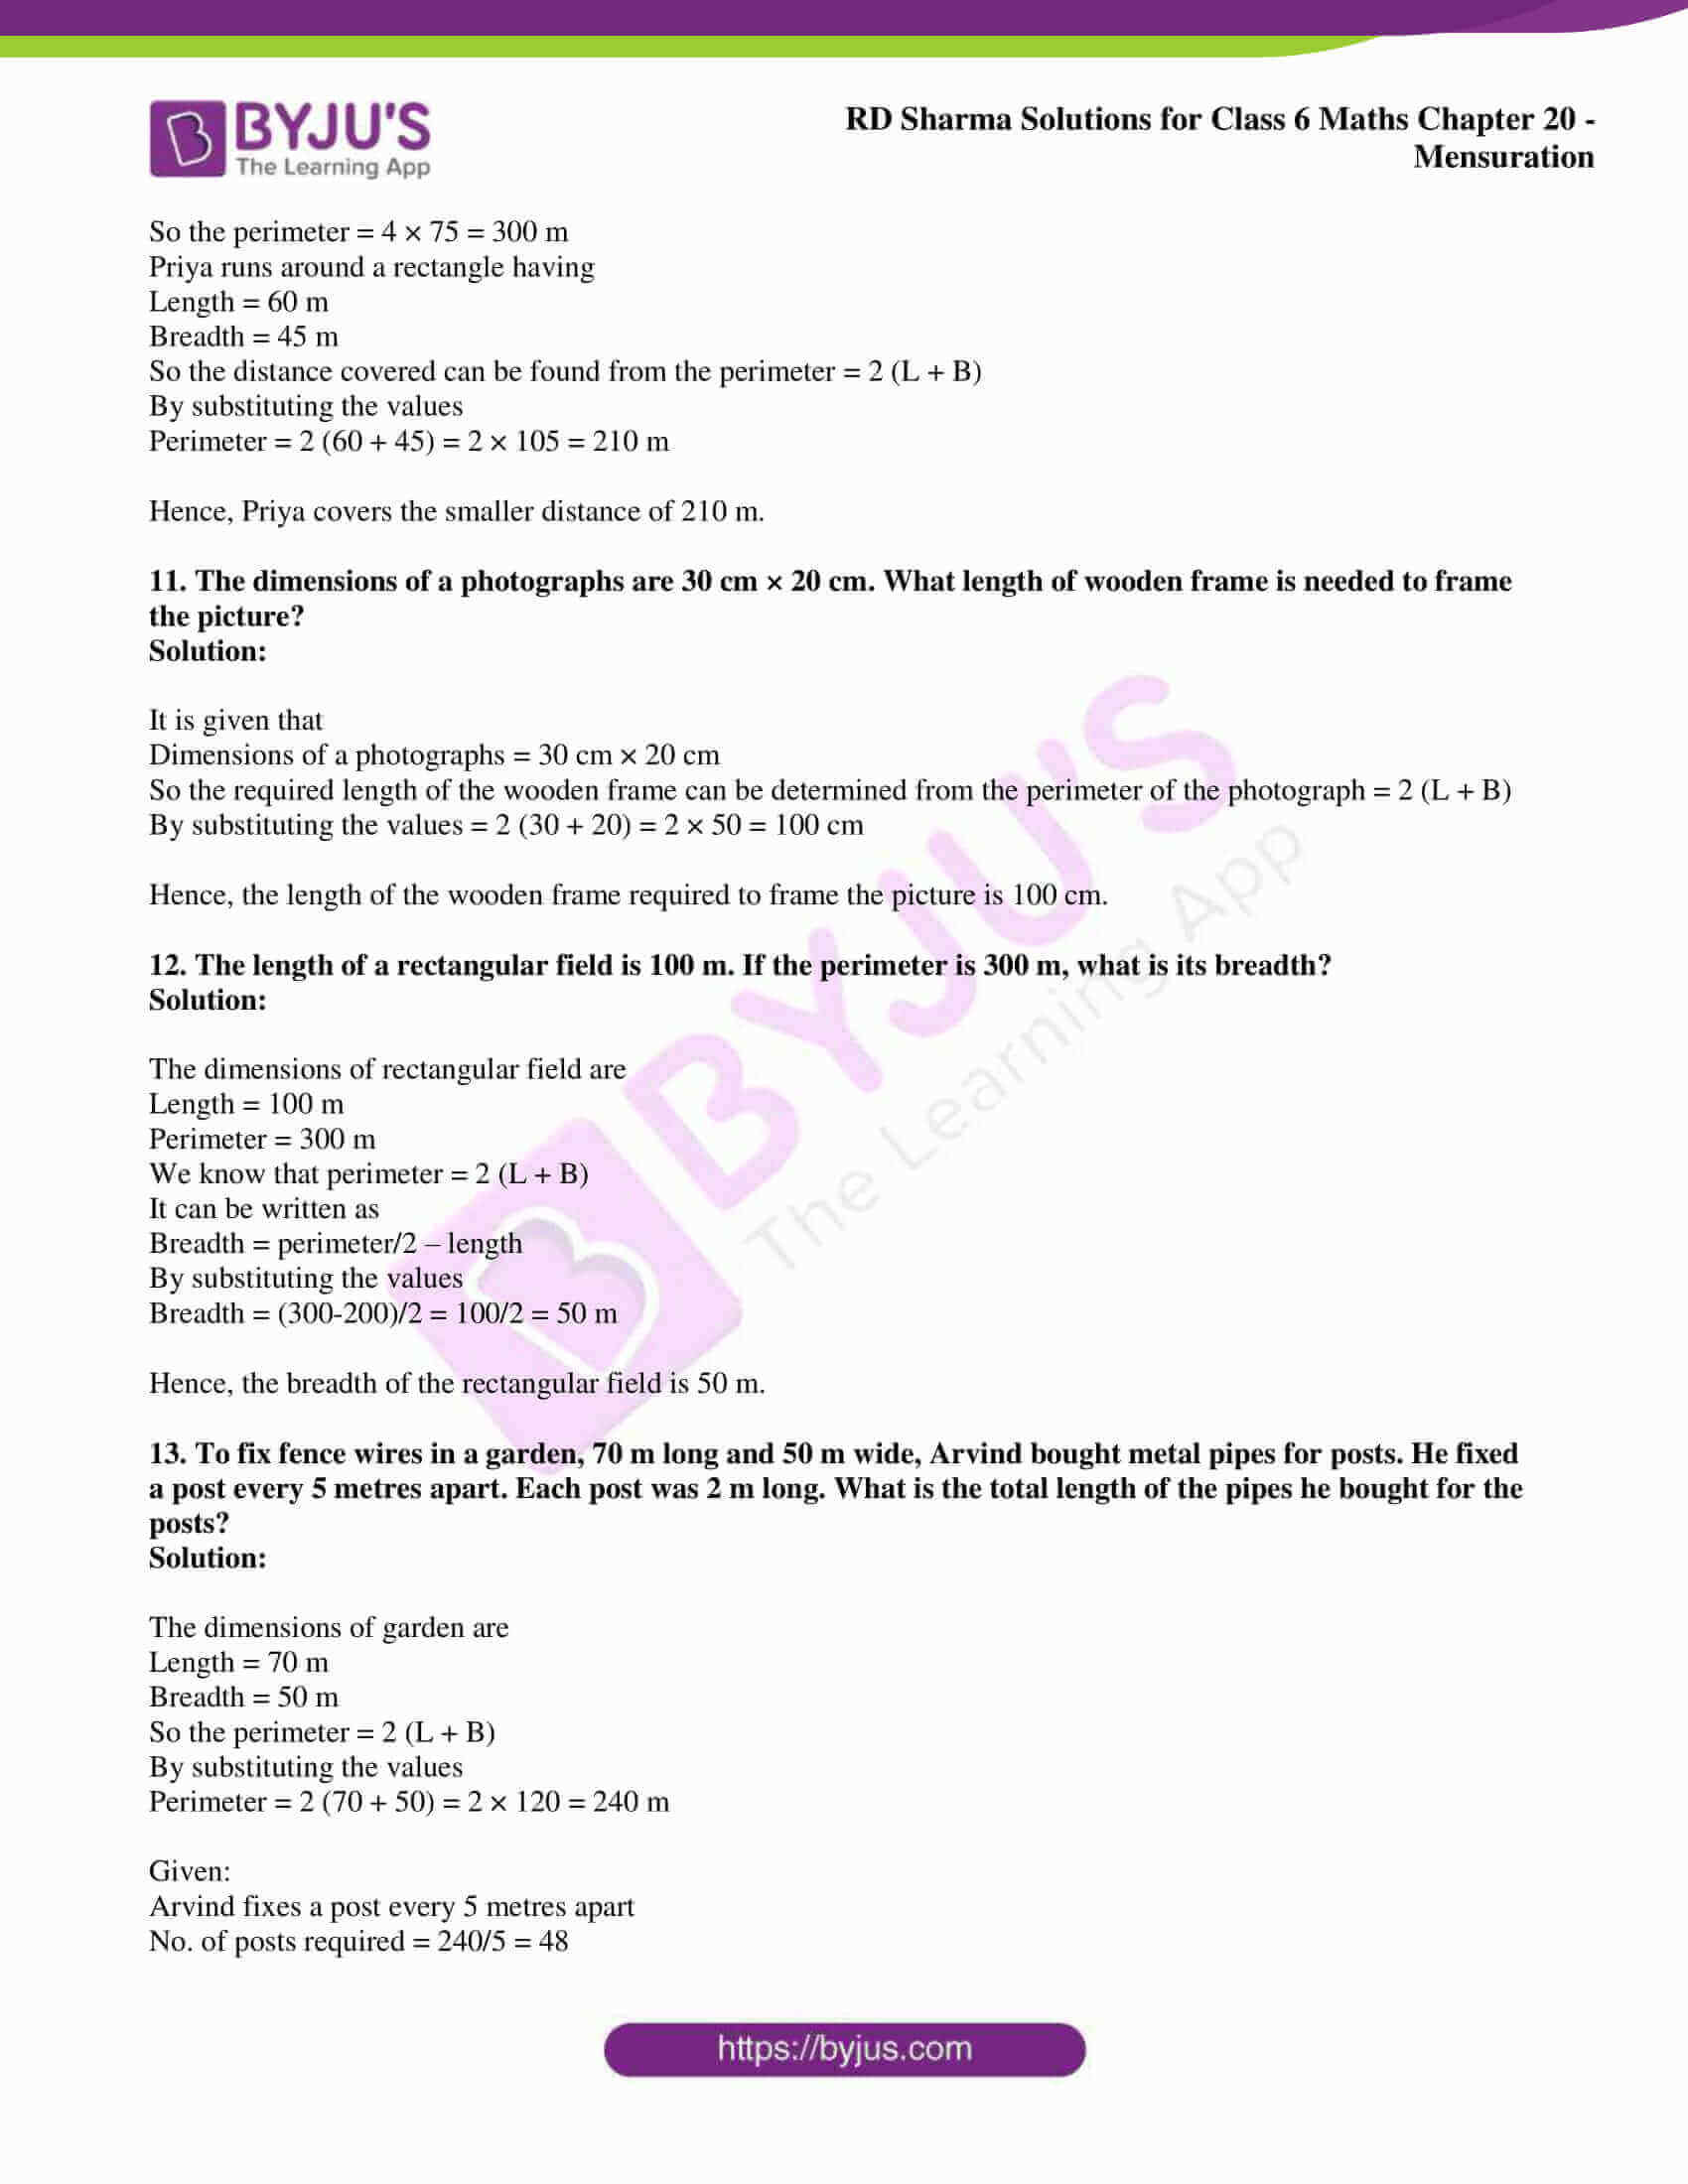 rd sharma solutions nov2020 class 6 maths chapter 20 exercise 2 4